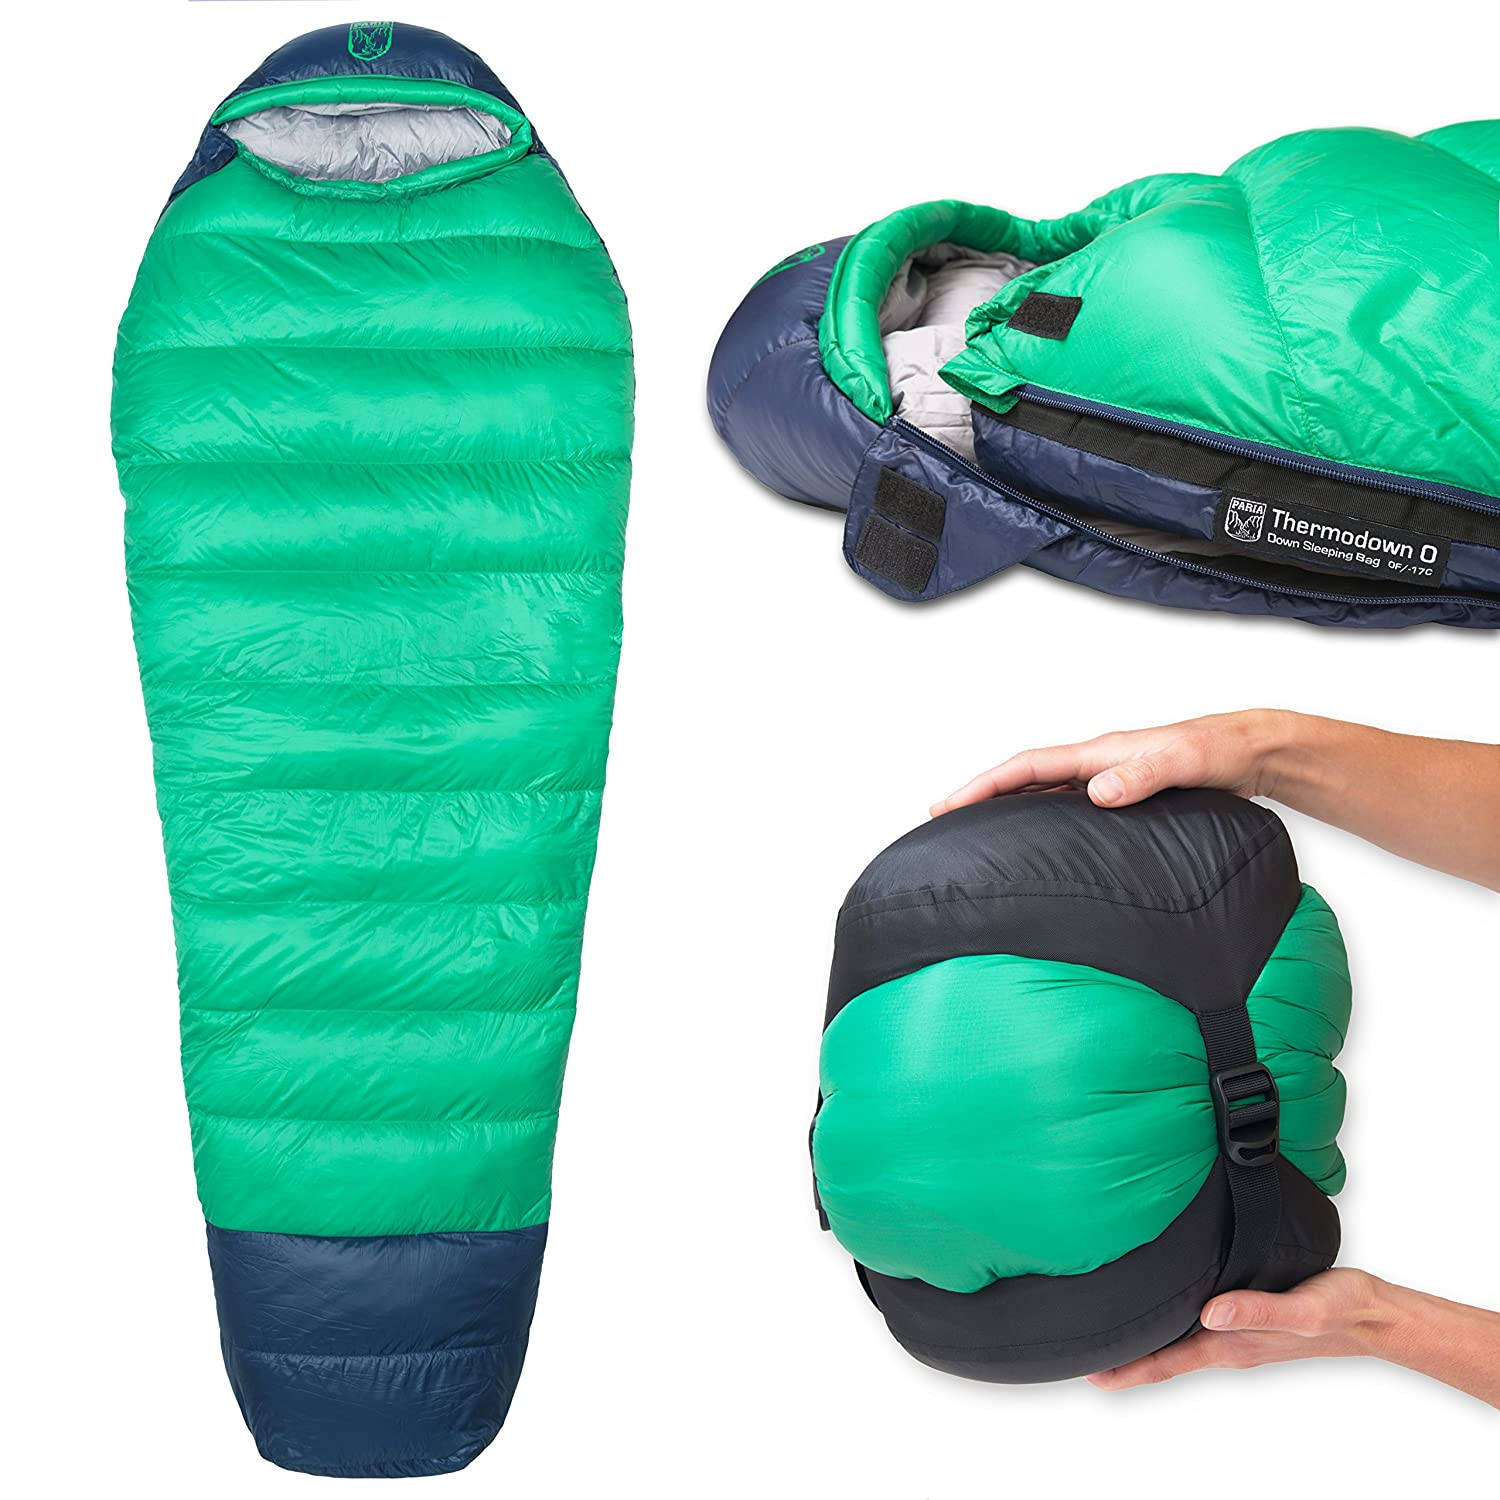 new product d0eaa d9967 Paria Outdoor Products Thermodown 0 Degree Down Mummy Sleeping Bag -  Ultralight Cold Weather, 4 Season Bag - Perfect for Backcountry Camping and  ...